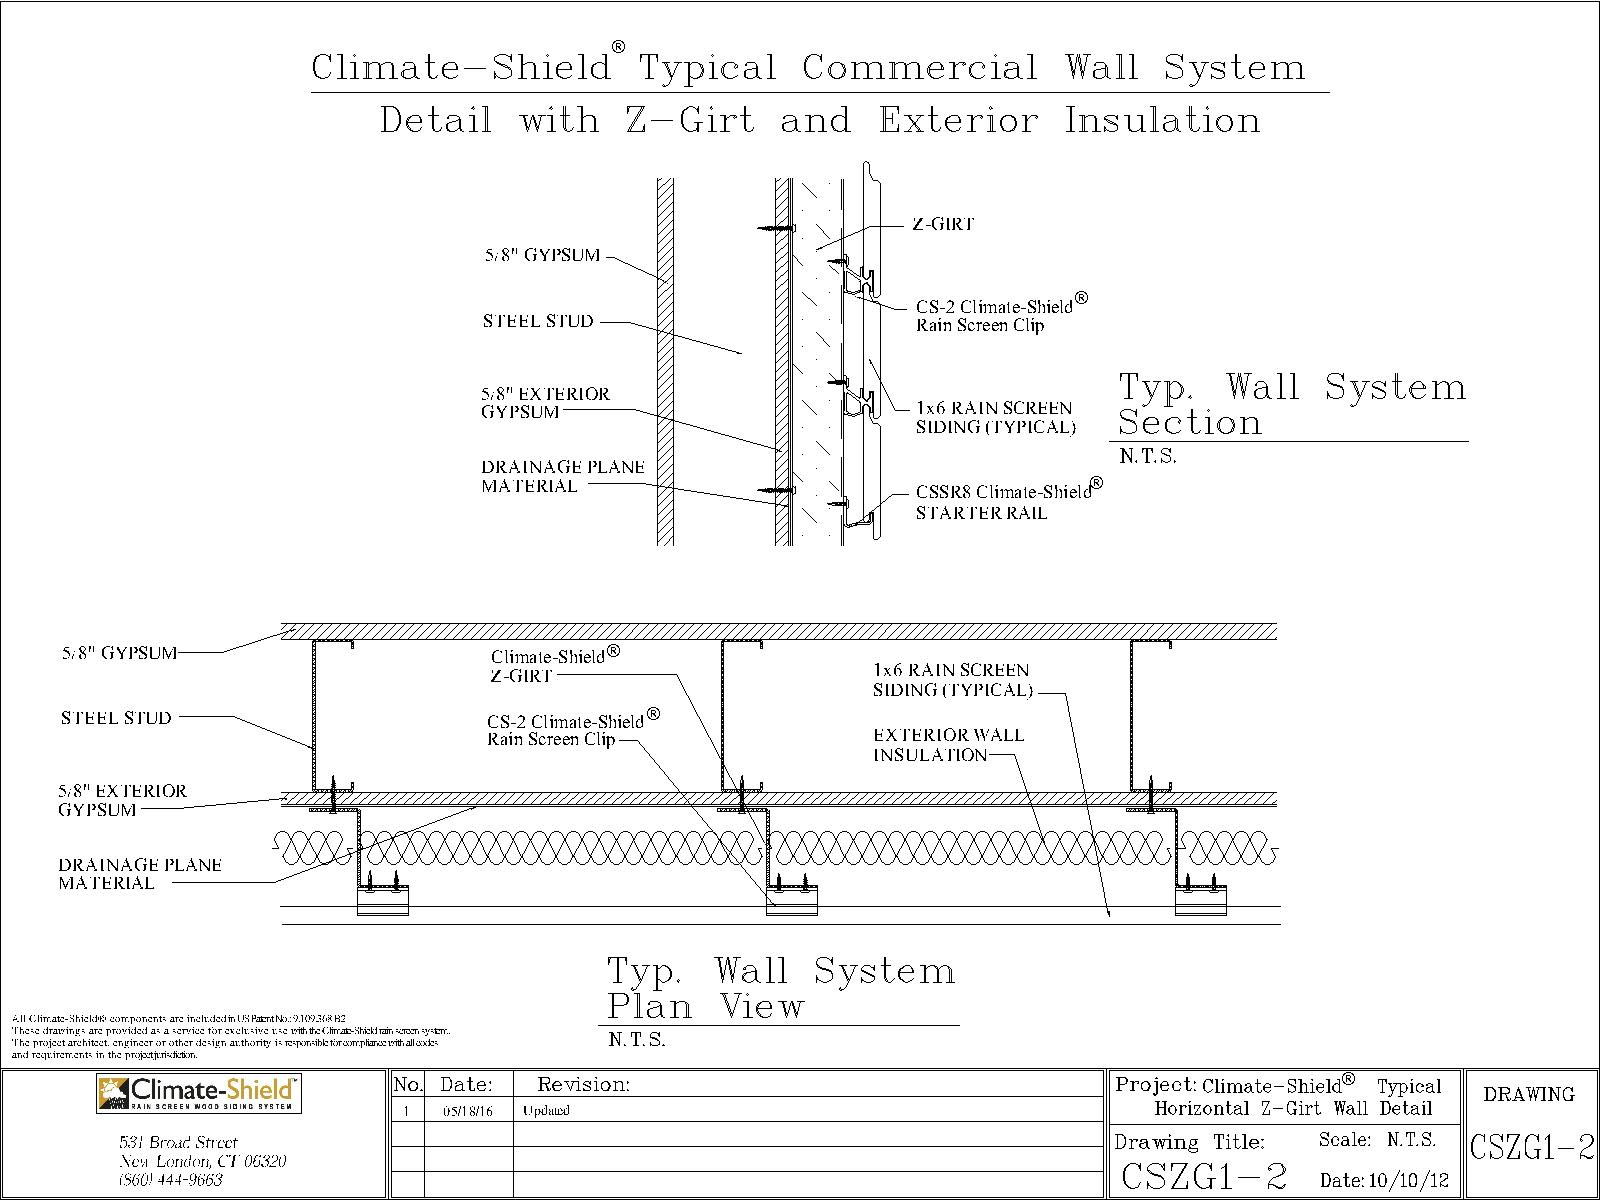 CSZG1-2_Climate-Shield_Z-Girt_typical_wall_assembly.jpg